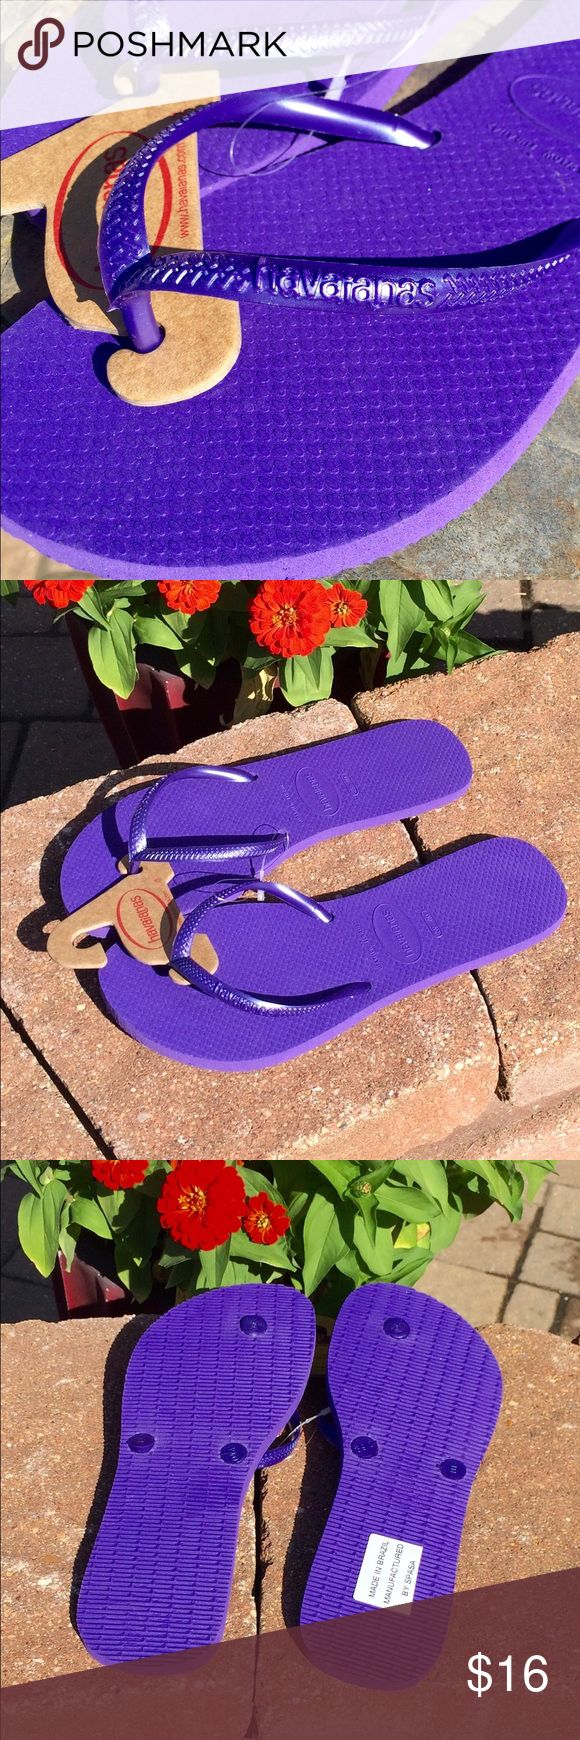 New Havaianas Purple Flip Flops Size 9/10W Brand new royal purple beauties! Top slightly pearlized. Made in Brazil. Havaianas Shoes Sandals